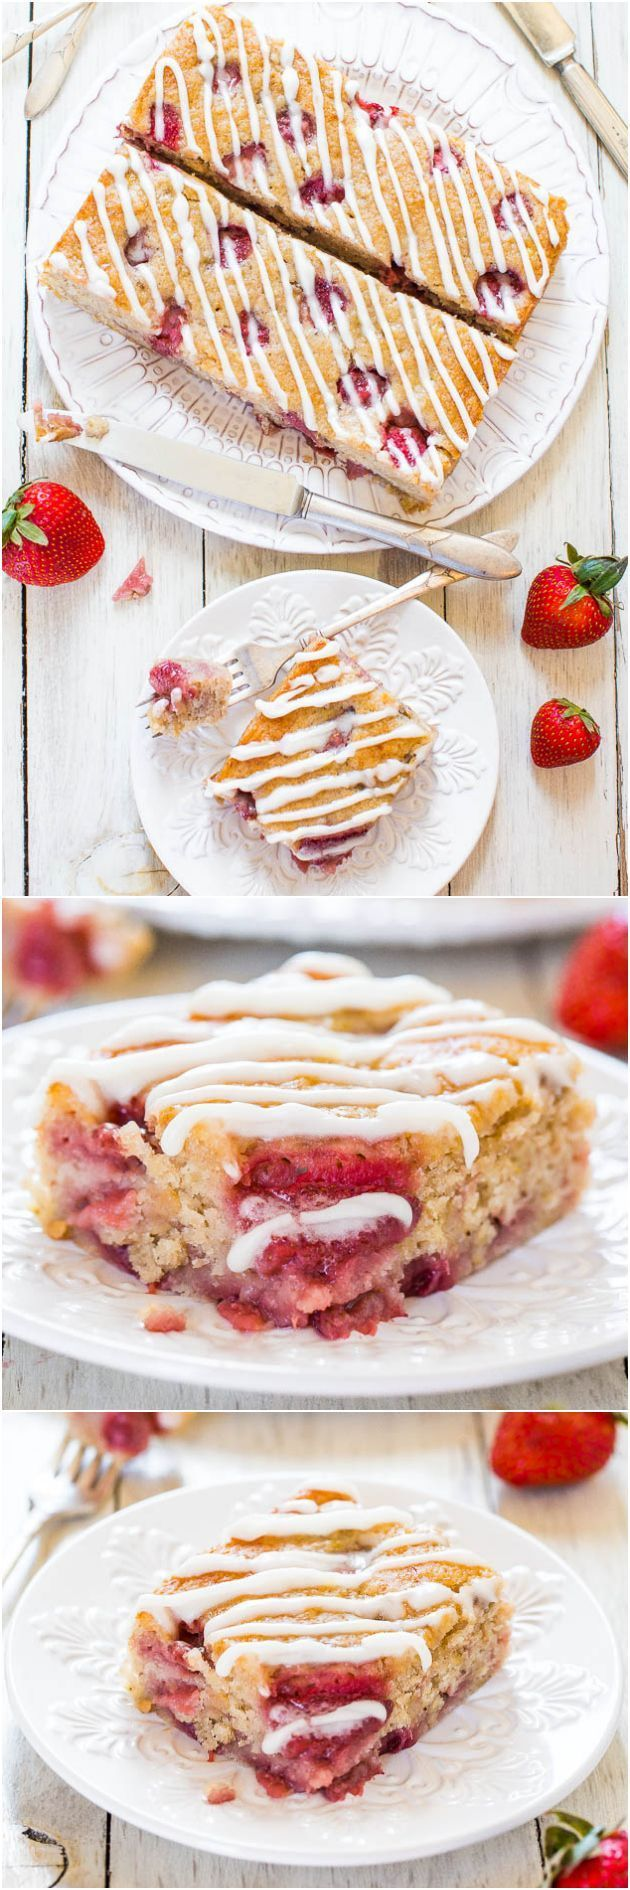 Soft & Fluffy Strawberry Banana Cake #vegan #strawberry #cake